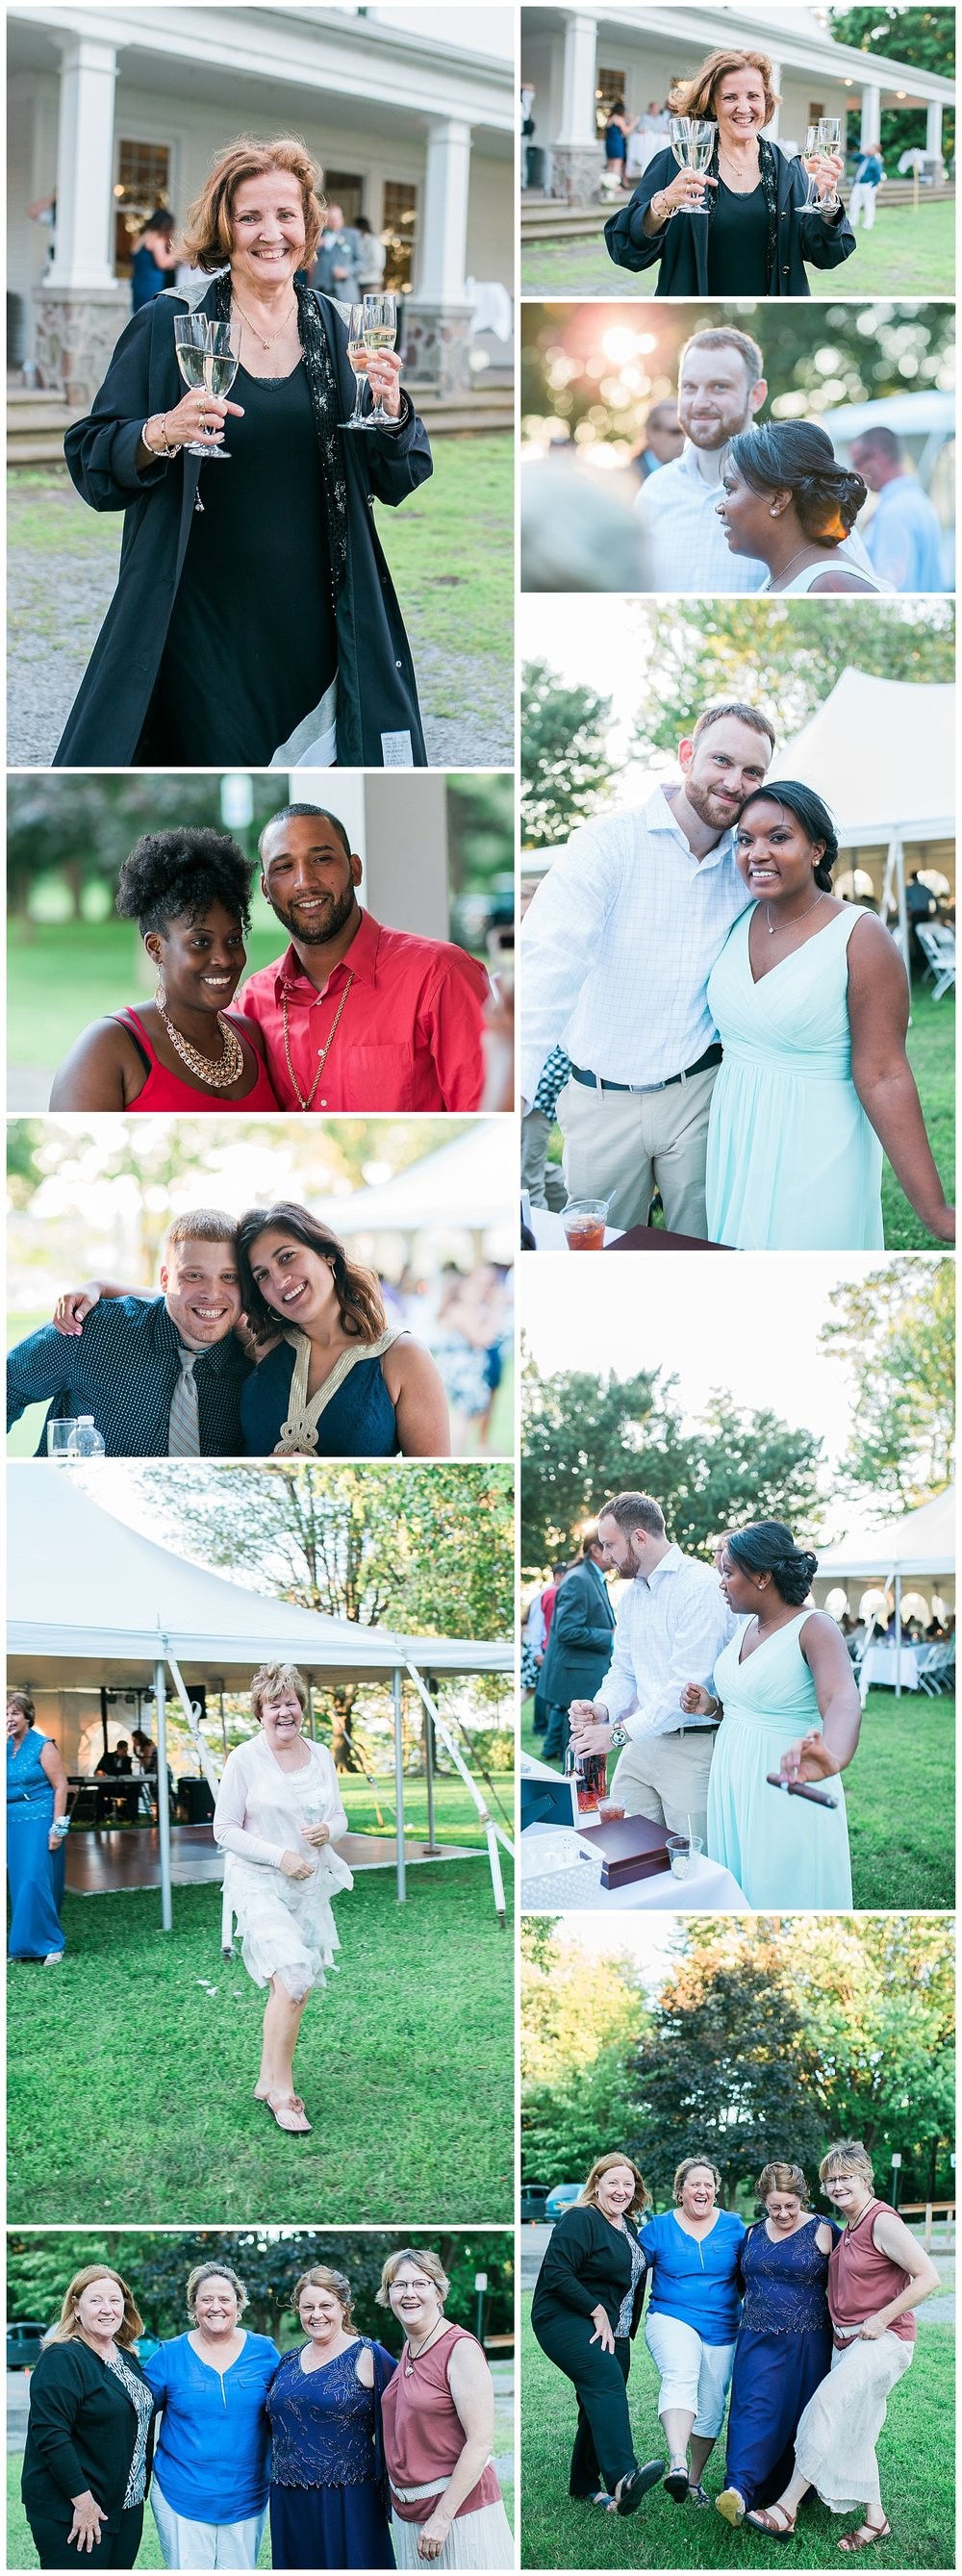 Sean and Andrea - Webster wedding - lass and beau-1301_Buffalo wedding photography.jpg